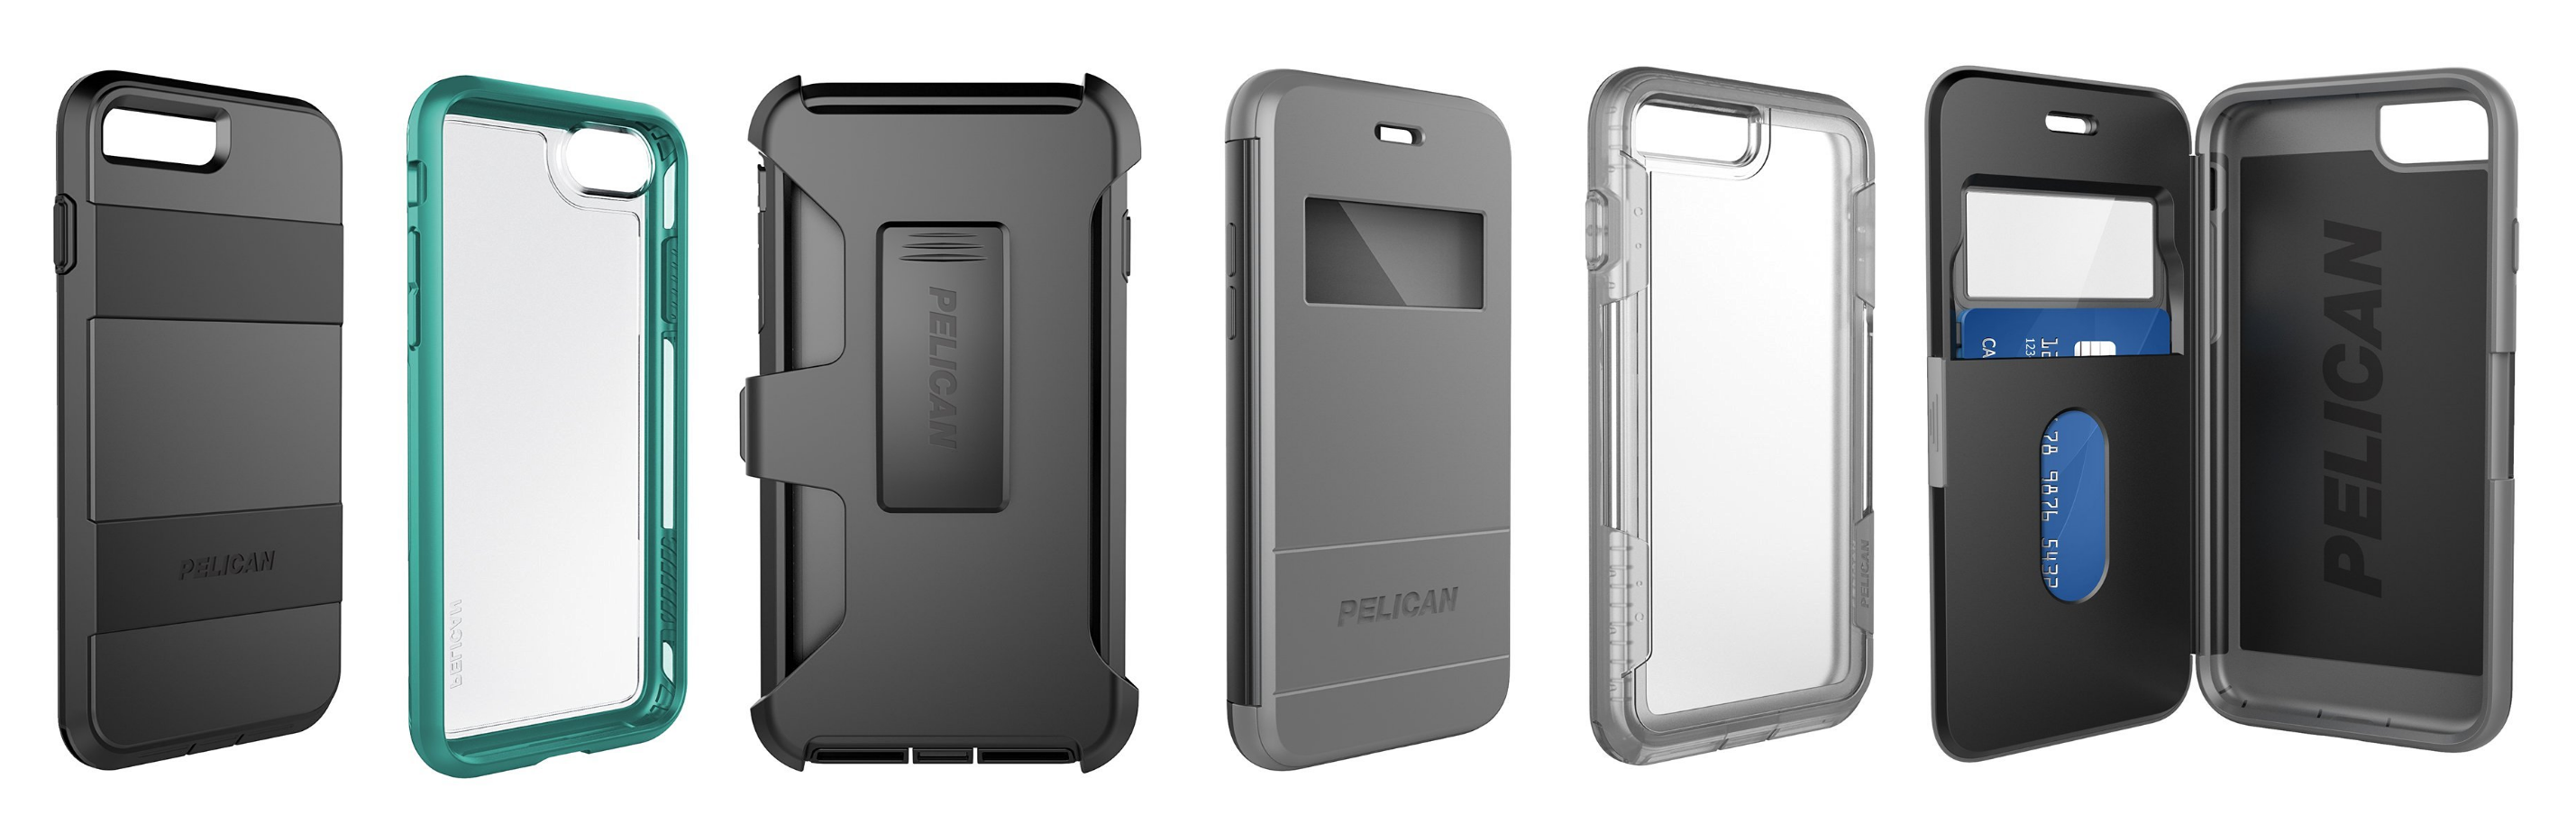 pelican-iphone-7-case